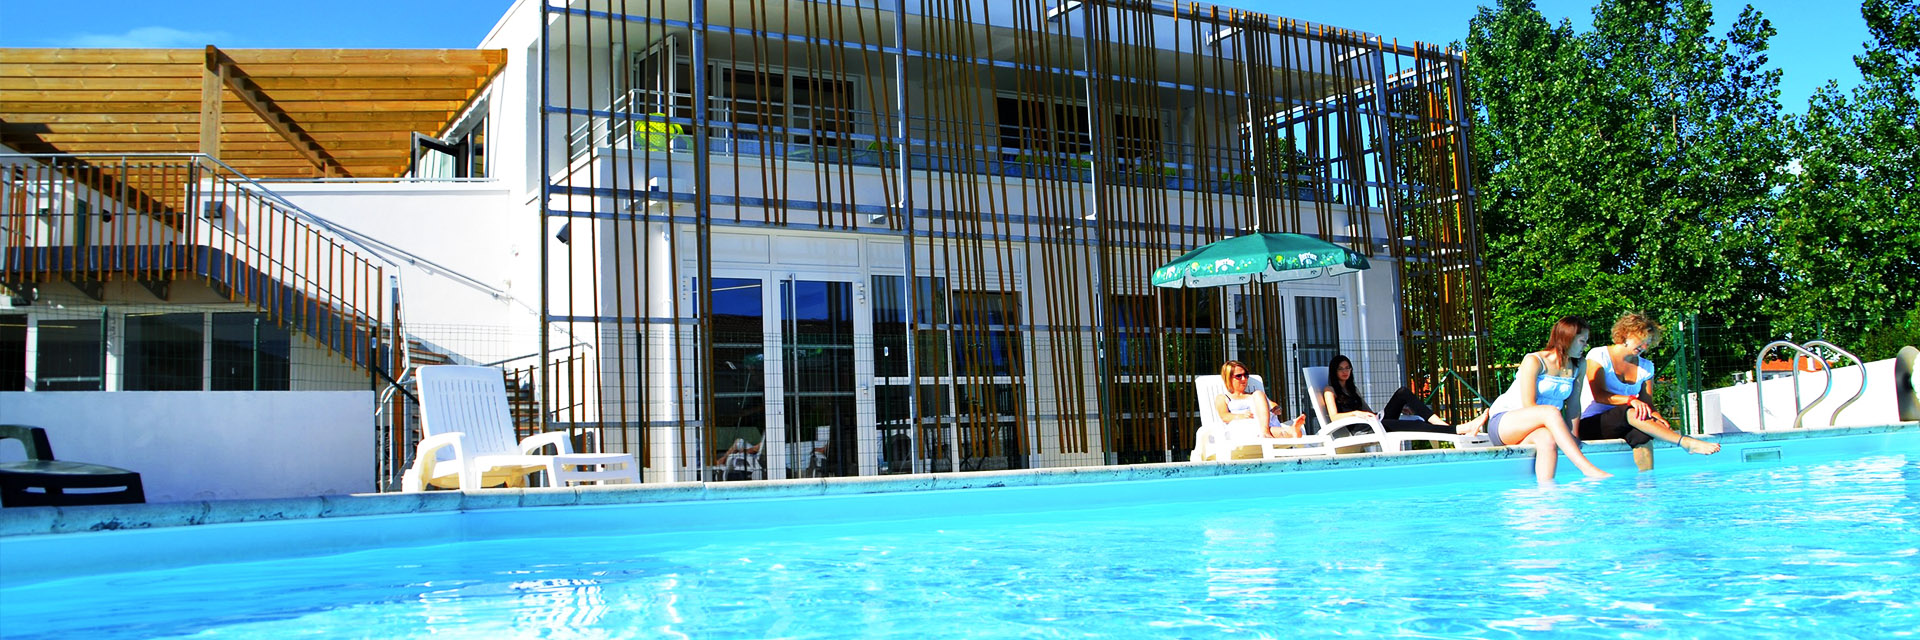 Village_club_vacances_vendee-le-riviere-piscine